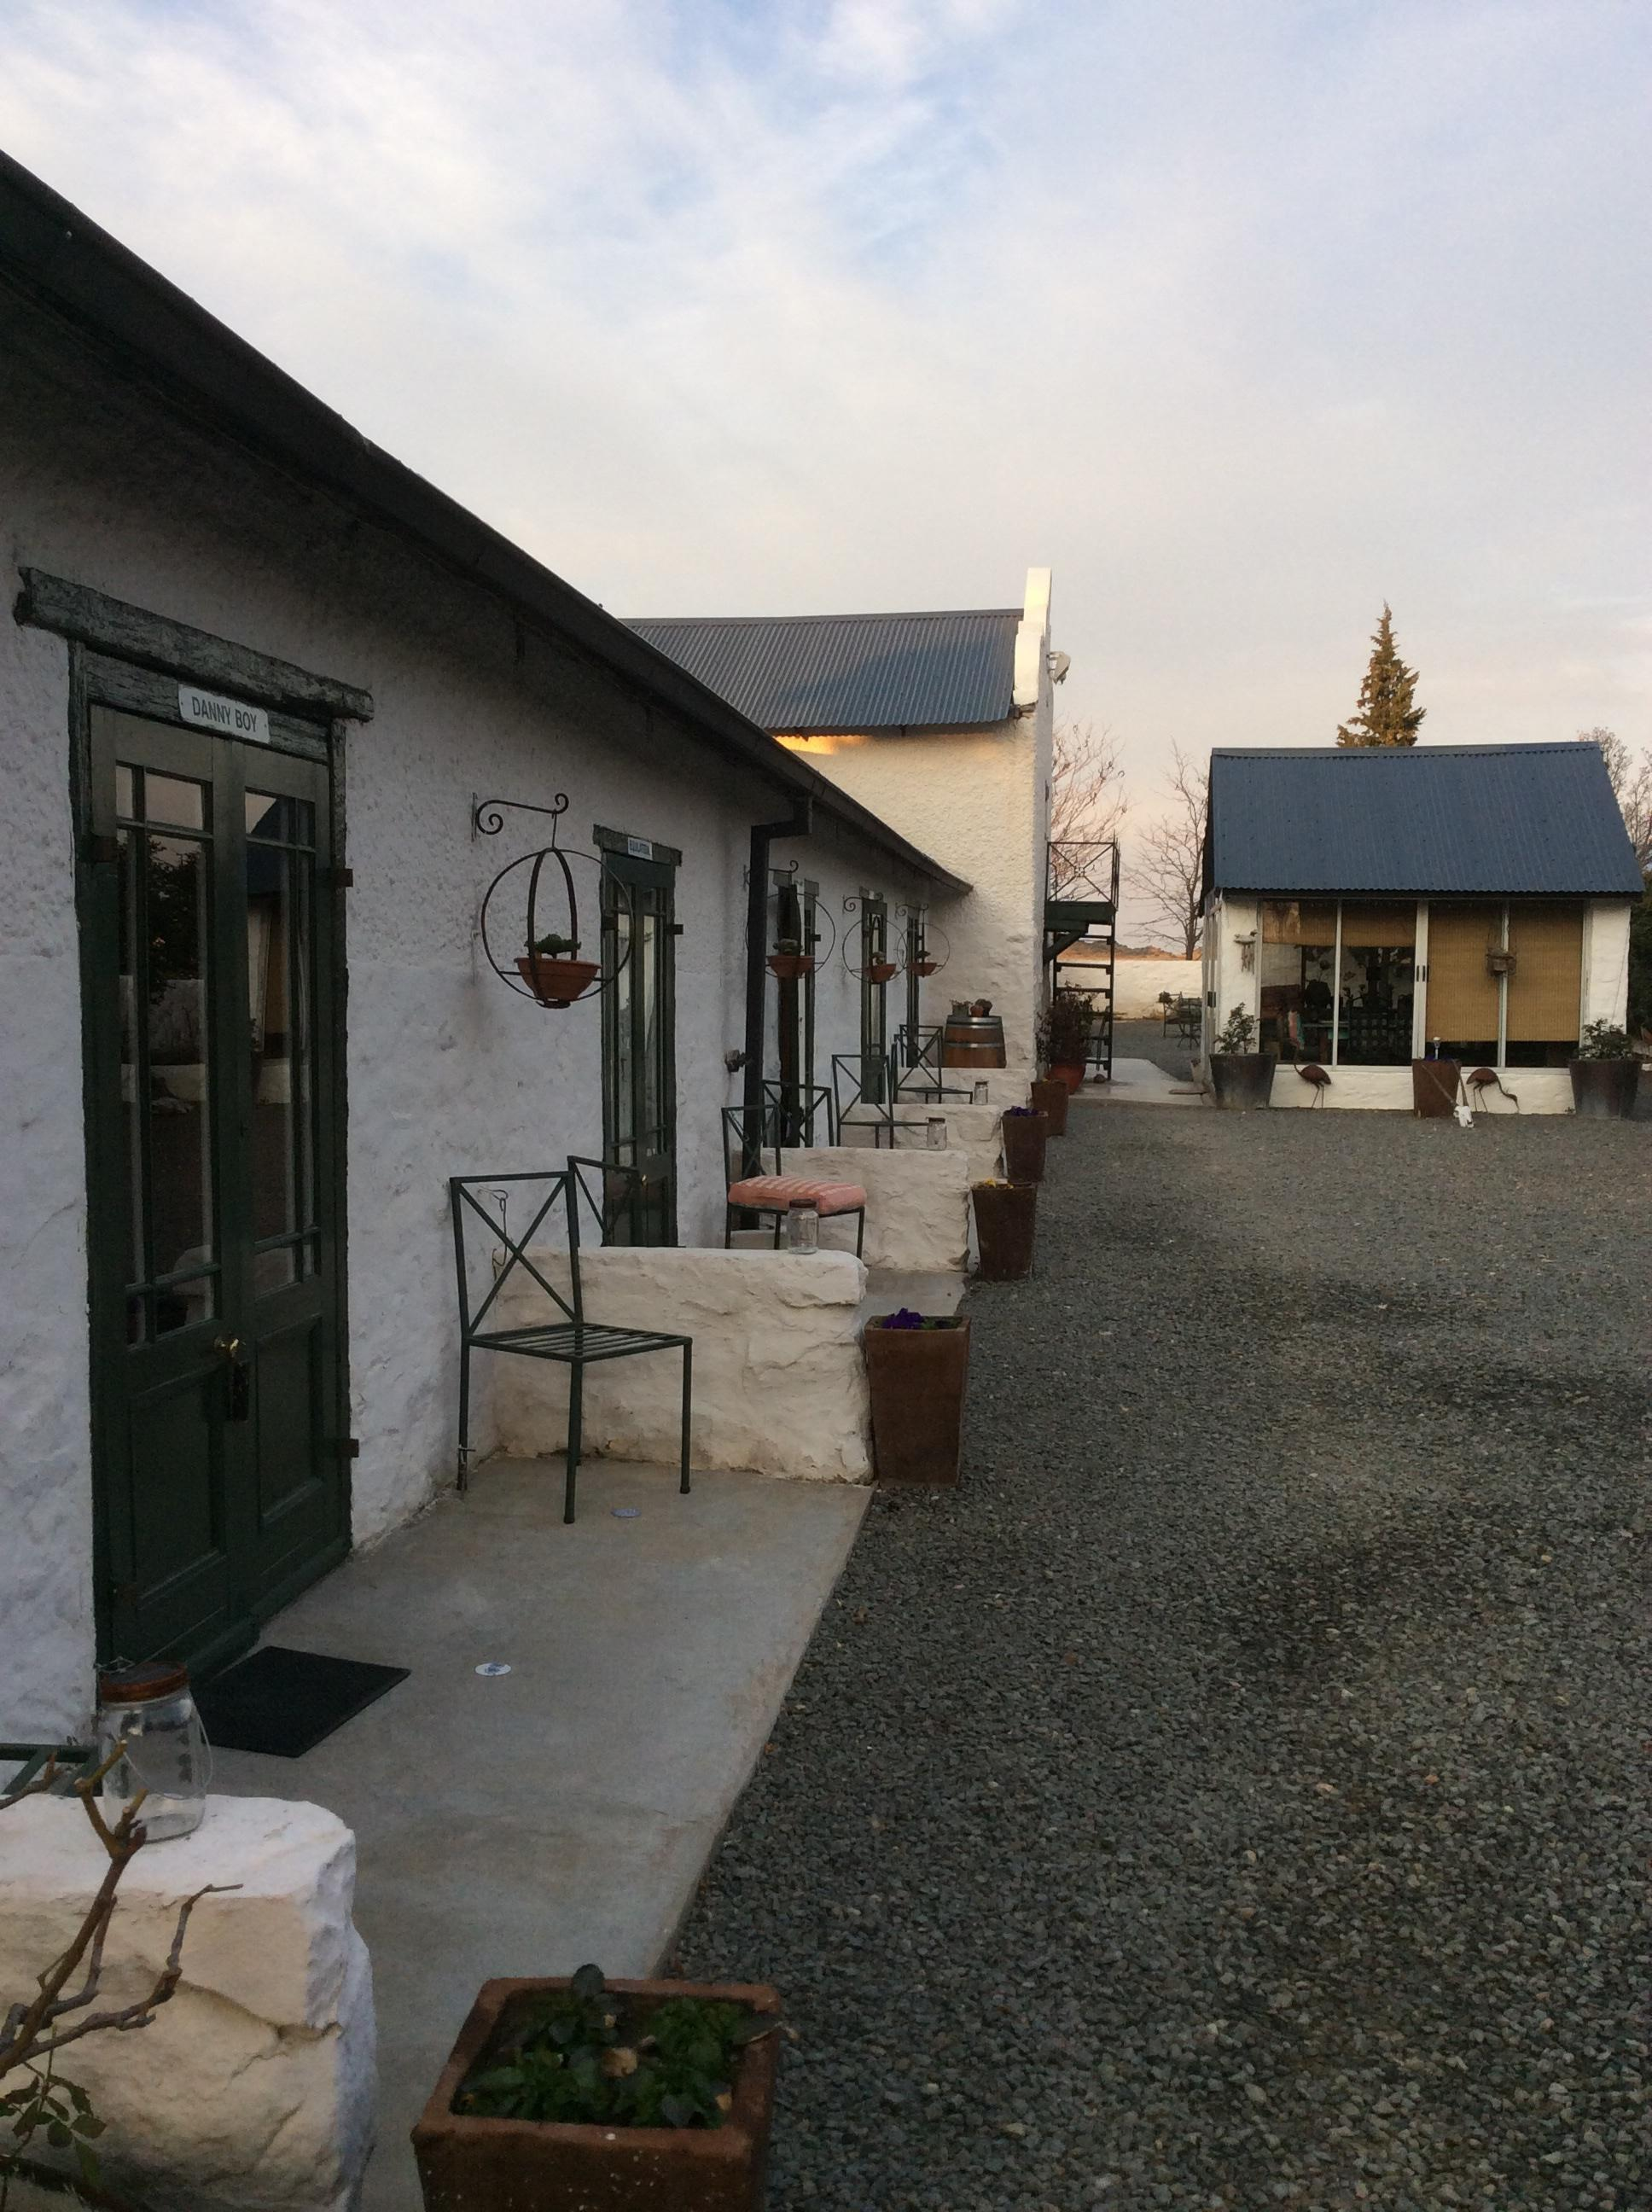 Kuilfontein Stable Cottages